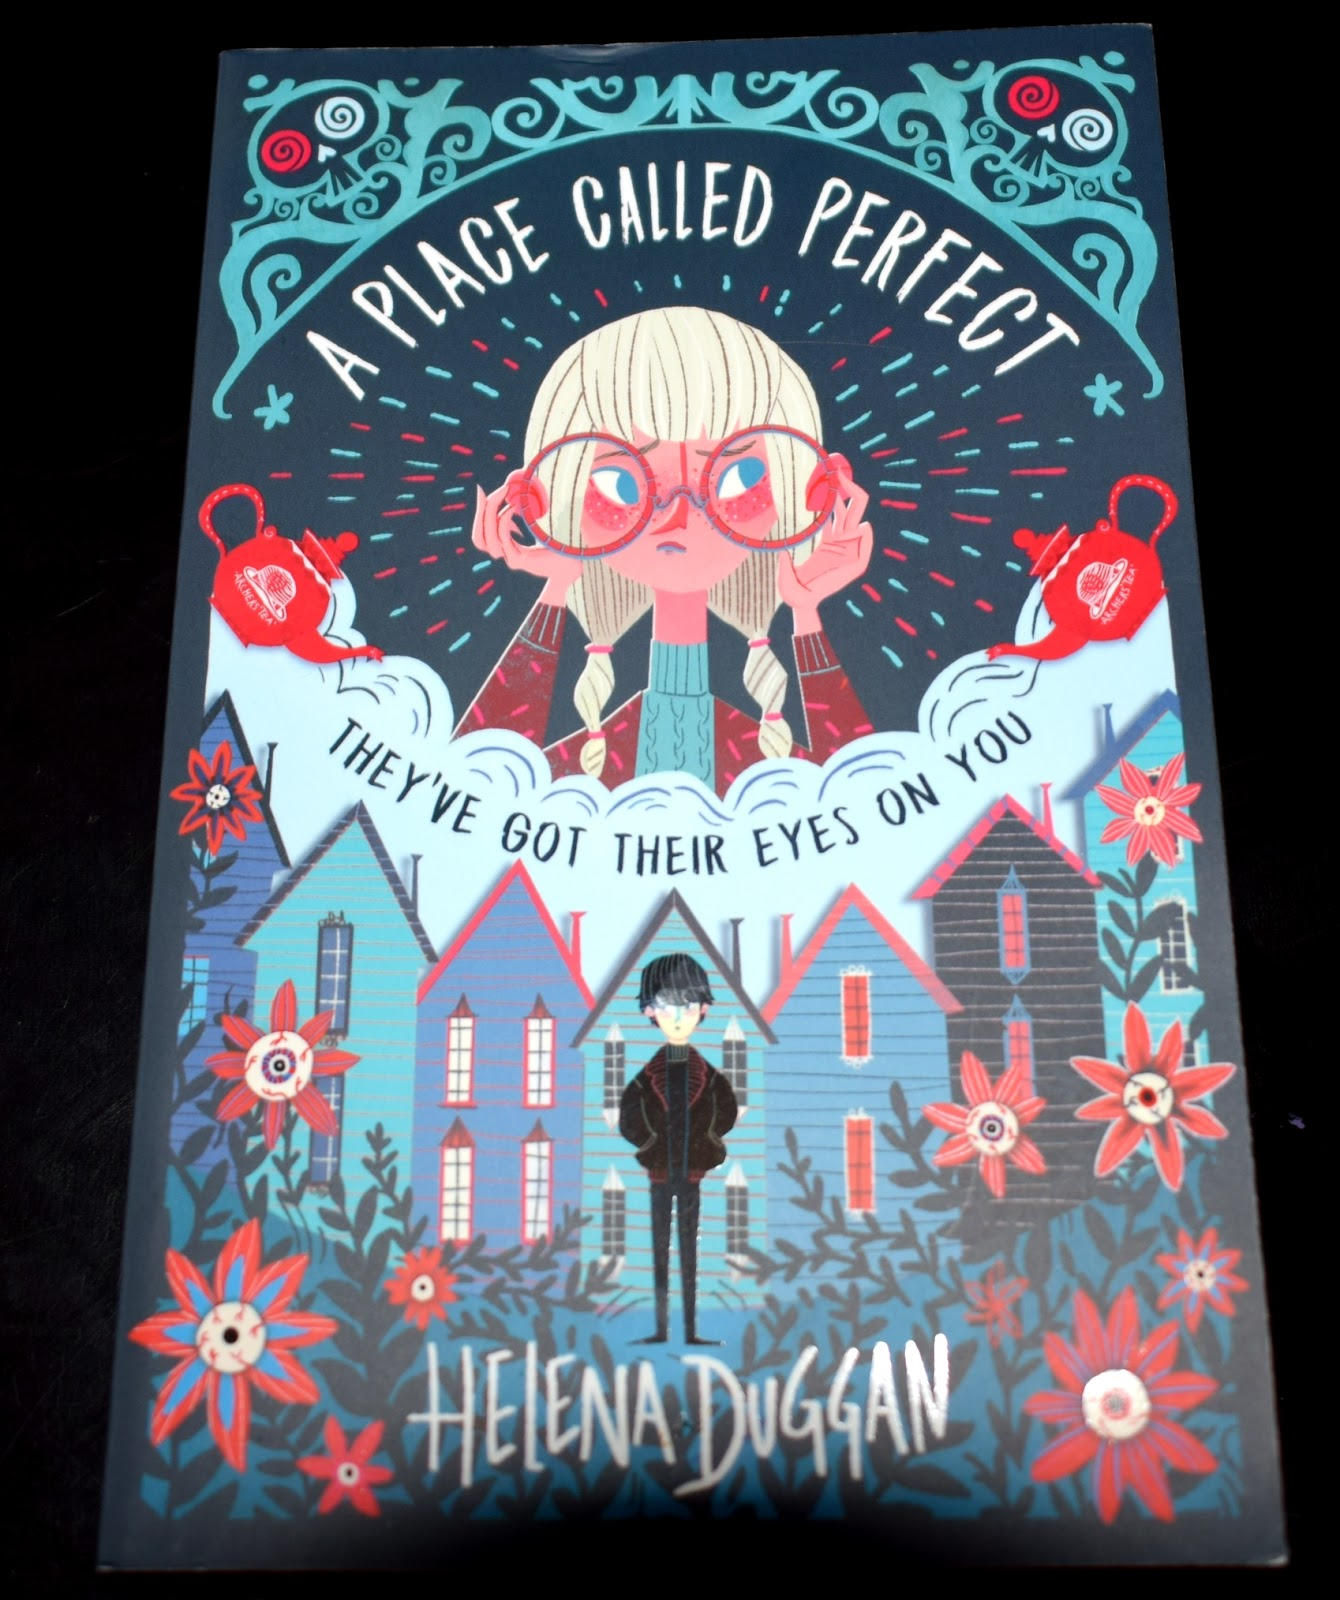 Tantrums To Smiles A Place Called Perfect Book Review